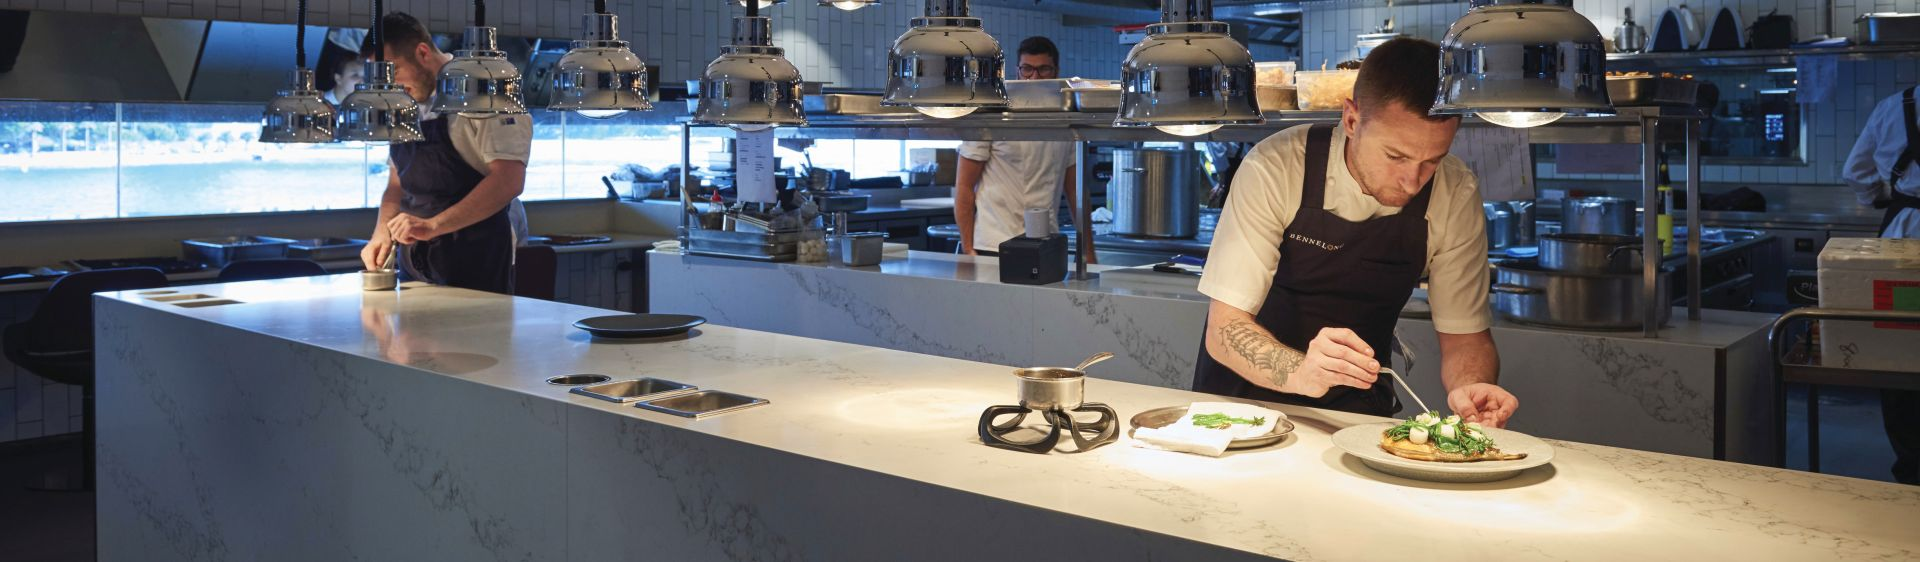 Chefs preparing food at Bennelong Restaurant, in the Sydney Opera House